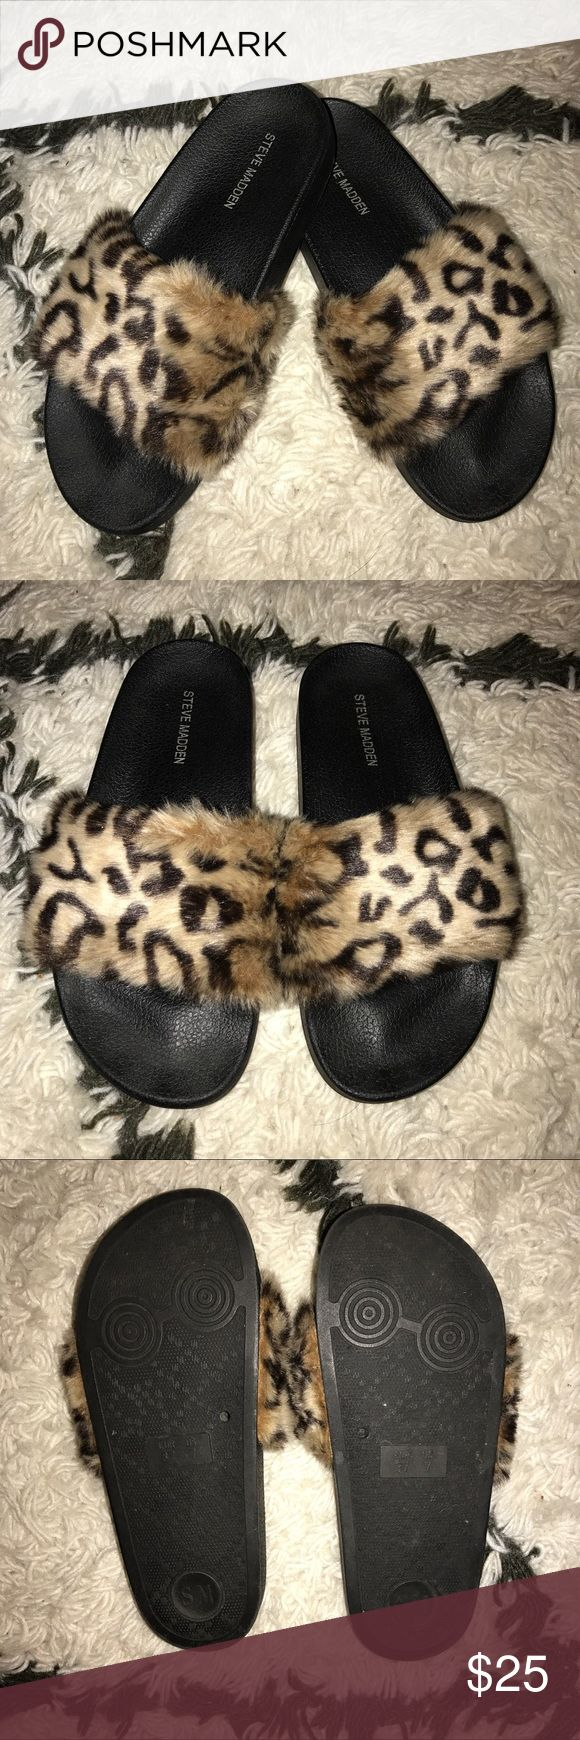 STEVE MADDEN 'Softey' Leopard fuzzy slides So so soft they're just a little too small for me! Size 7 // EU 37 worn maybe once. Perfect condition!! Steve Madden Shoes Flats & Loafers